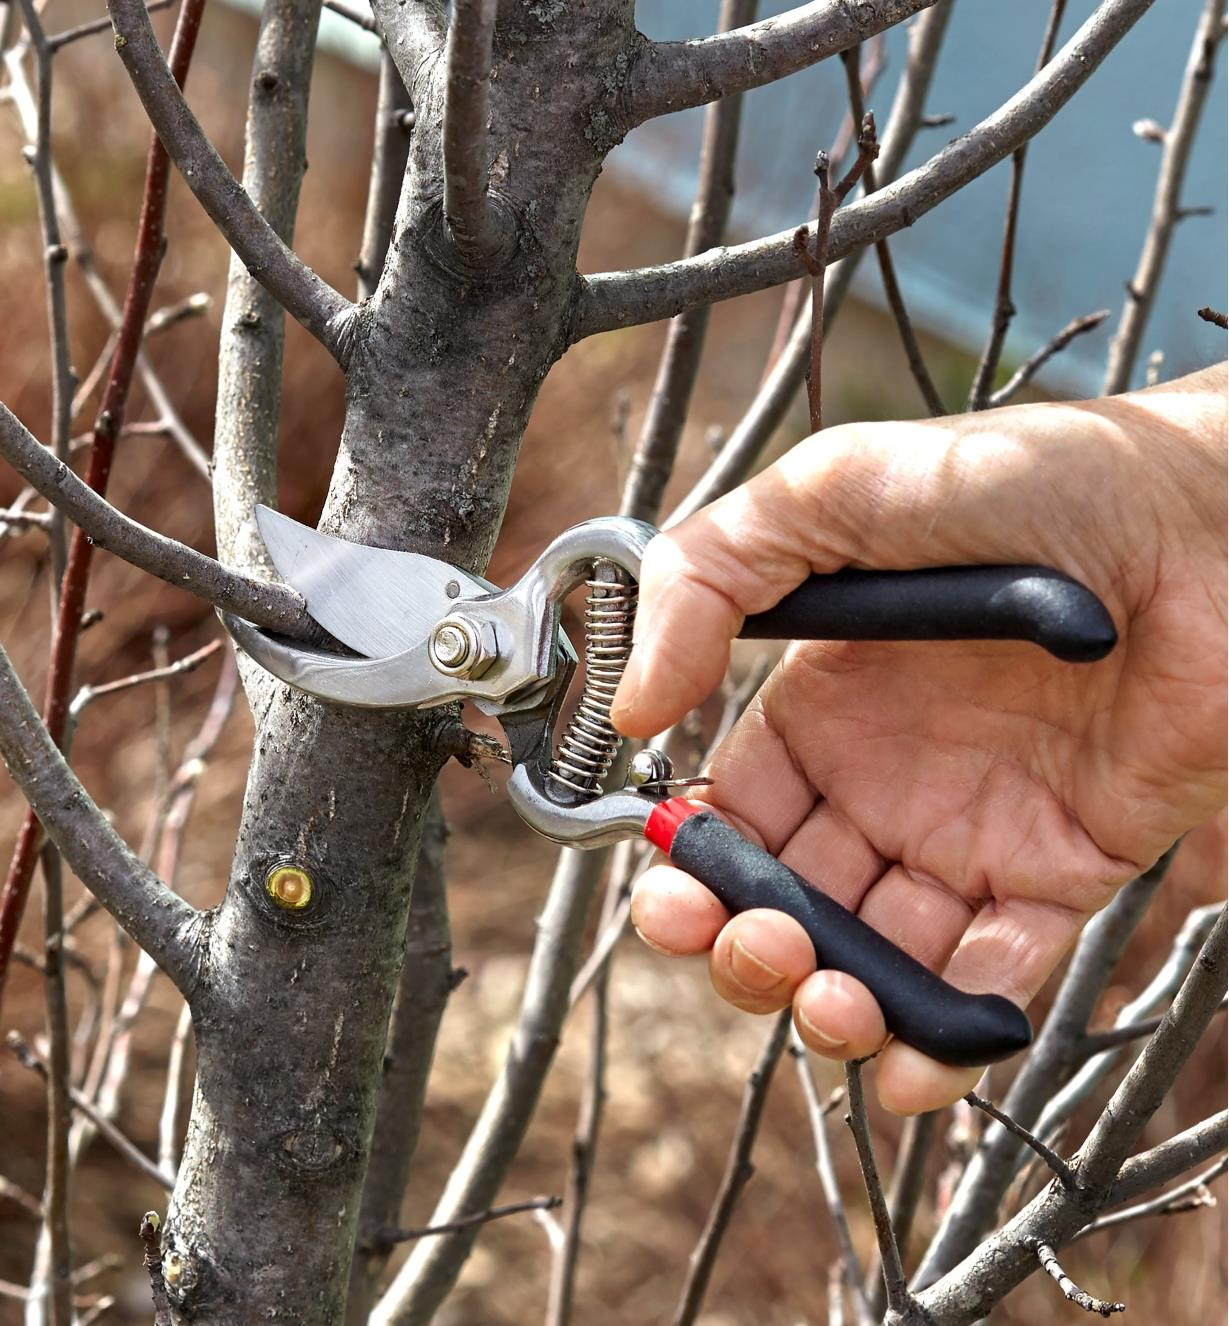 Bypass pruner being used to prune a small branch